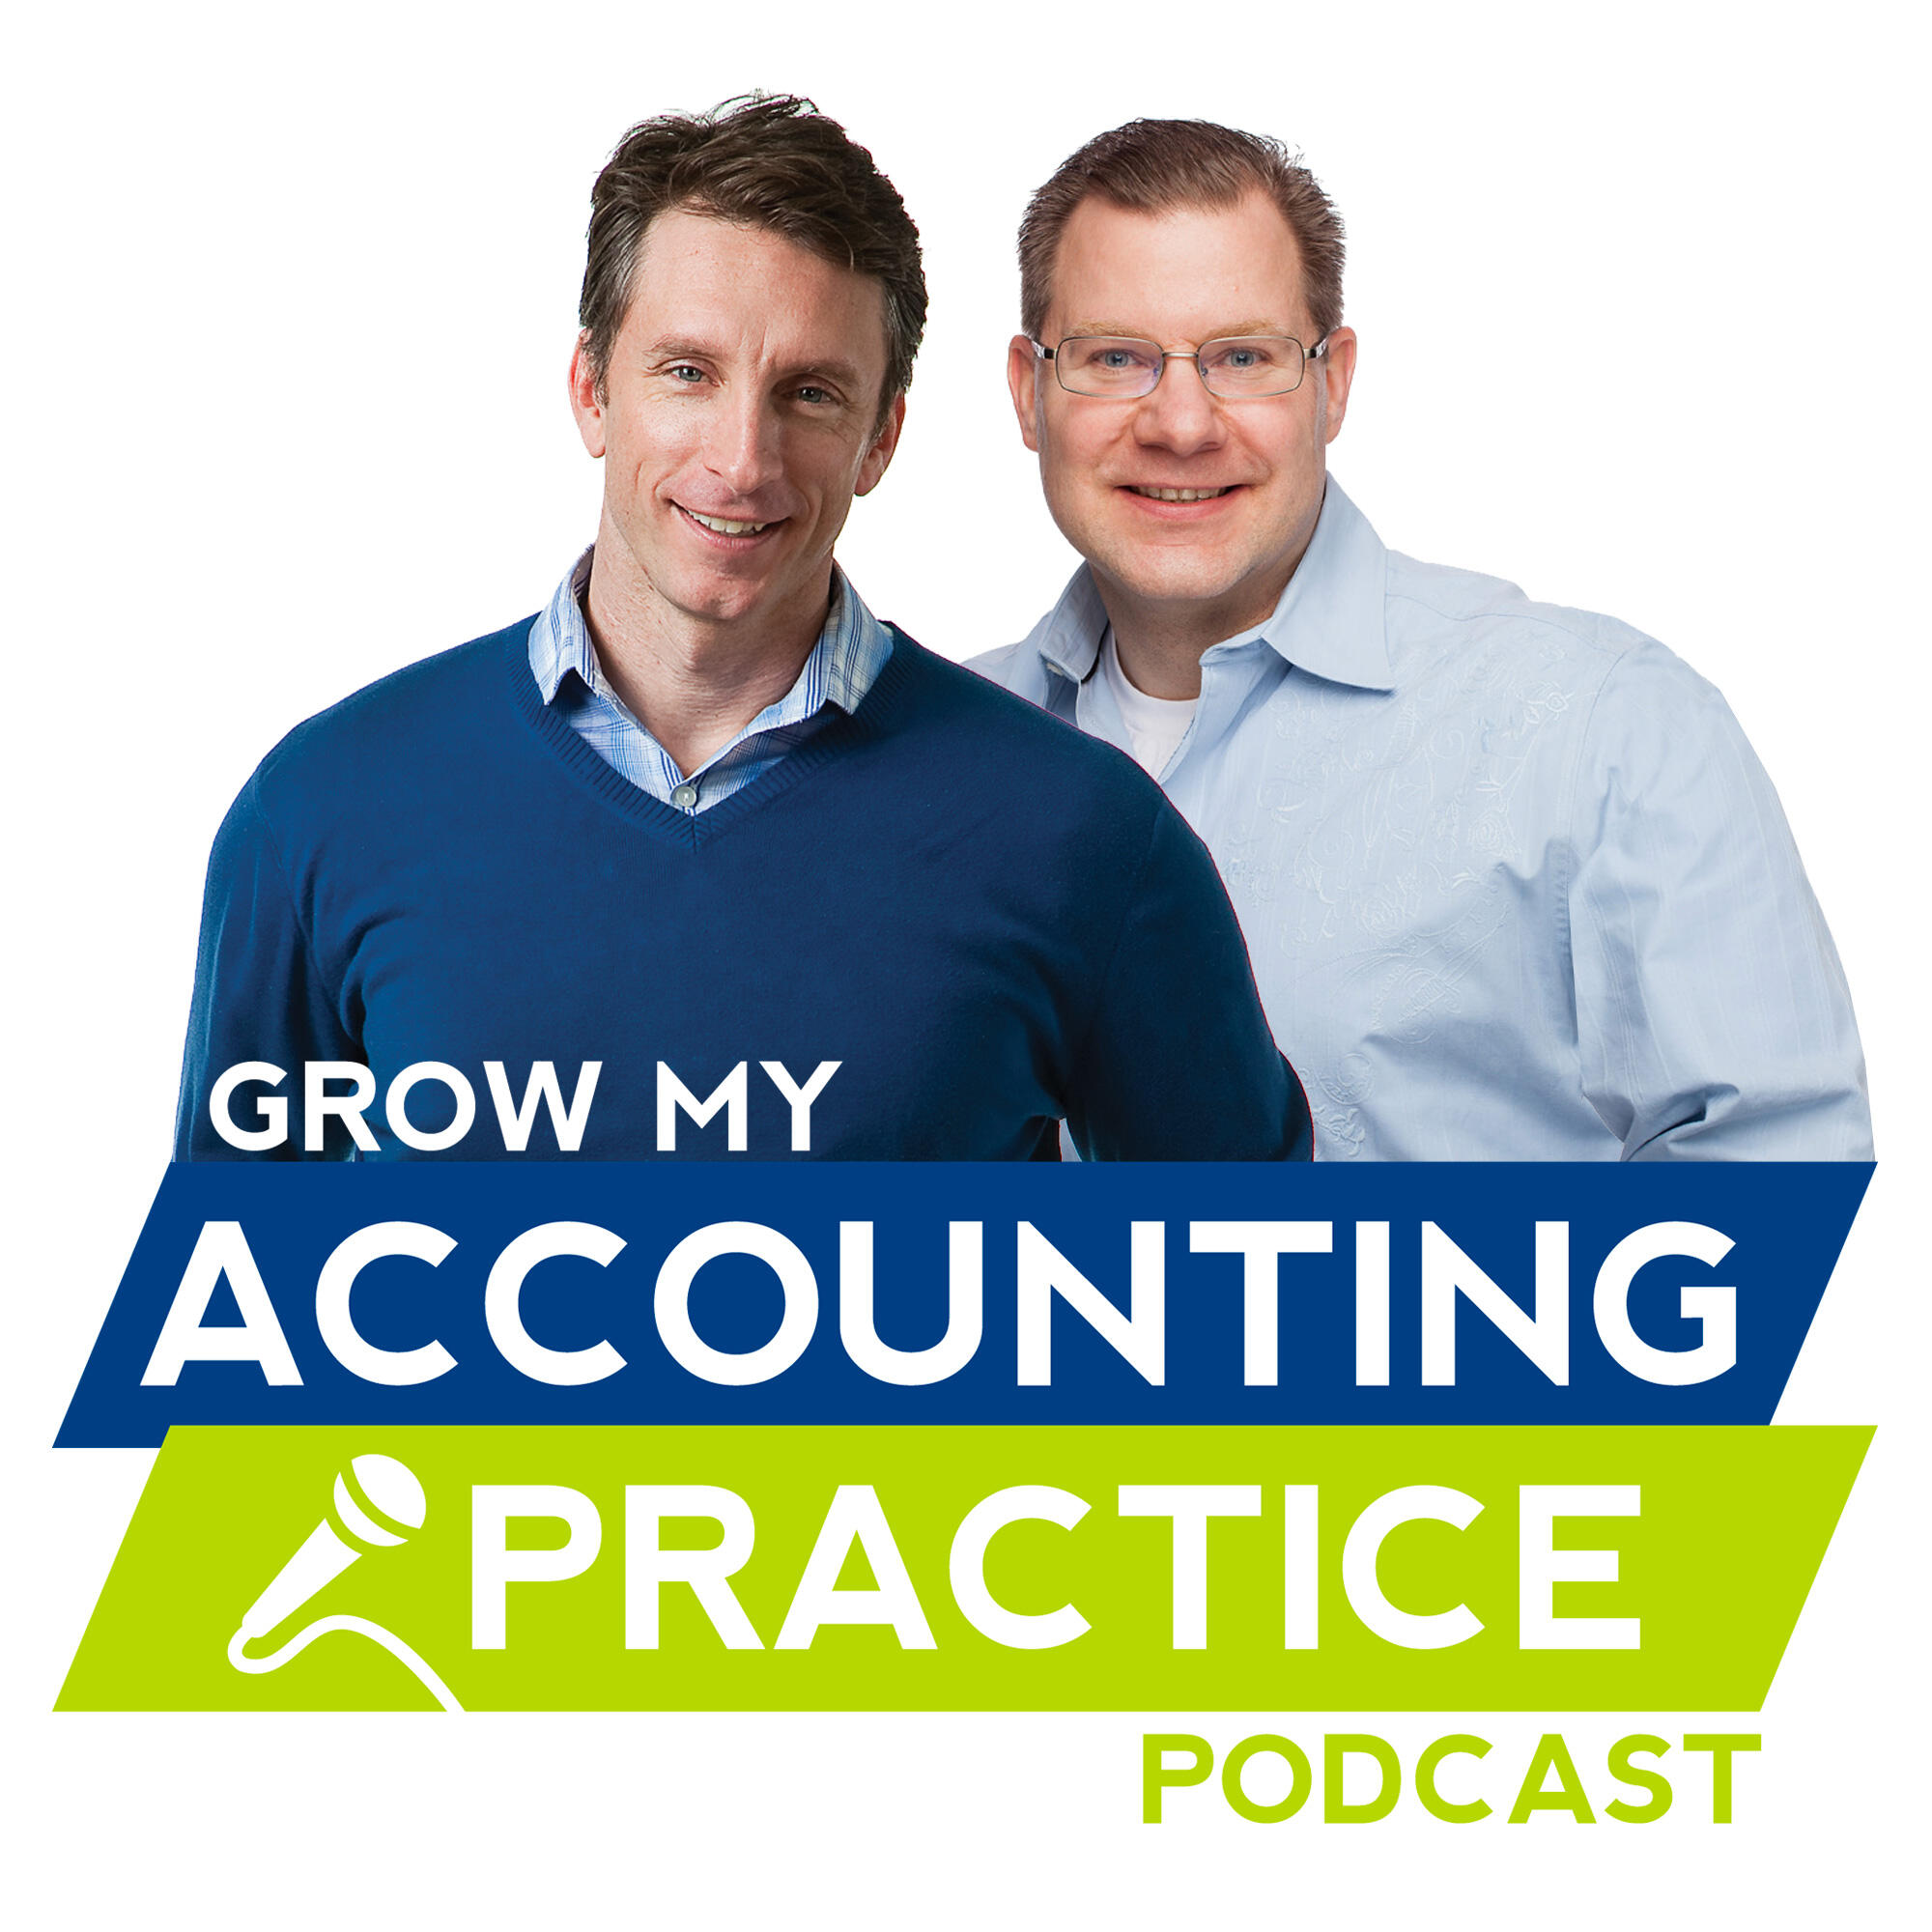 Grow My Accounting Practice | Tips for Accountants & Bookkeepers to Grow Their Business